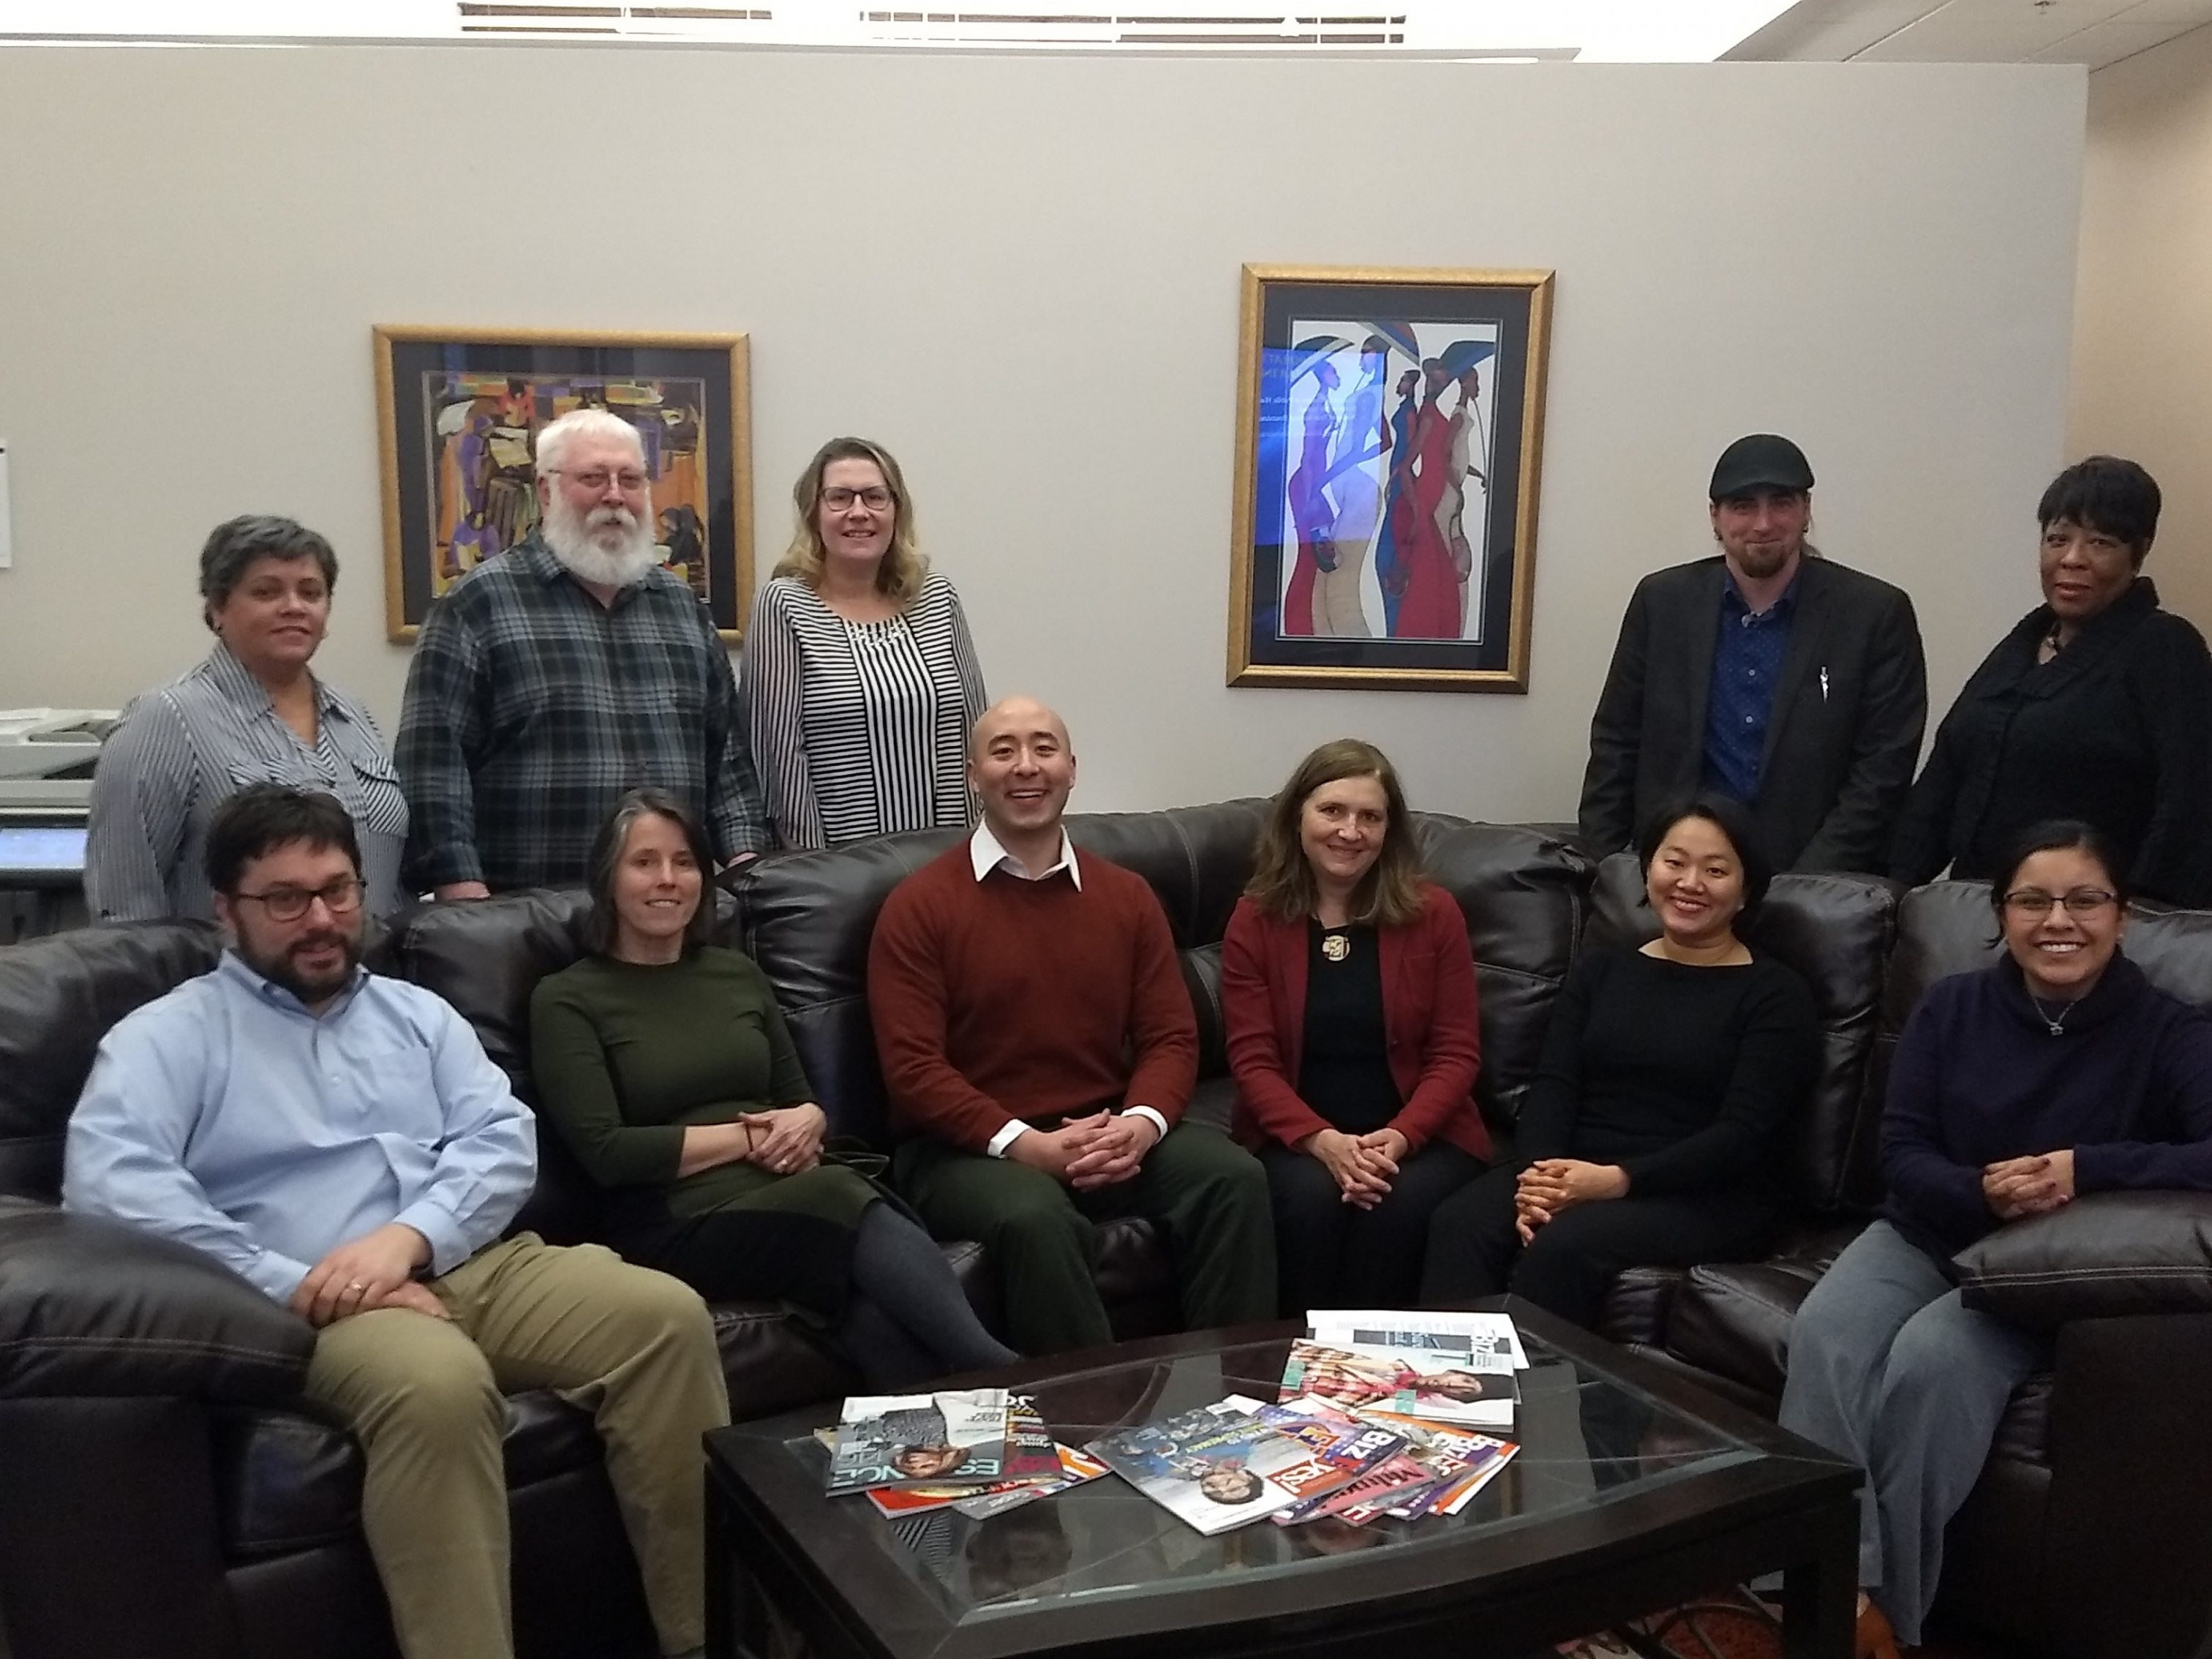 Pictured here are the members of the Legal Aid Society of Milwaukee's team at their downtown office as of 2019.